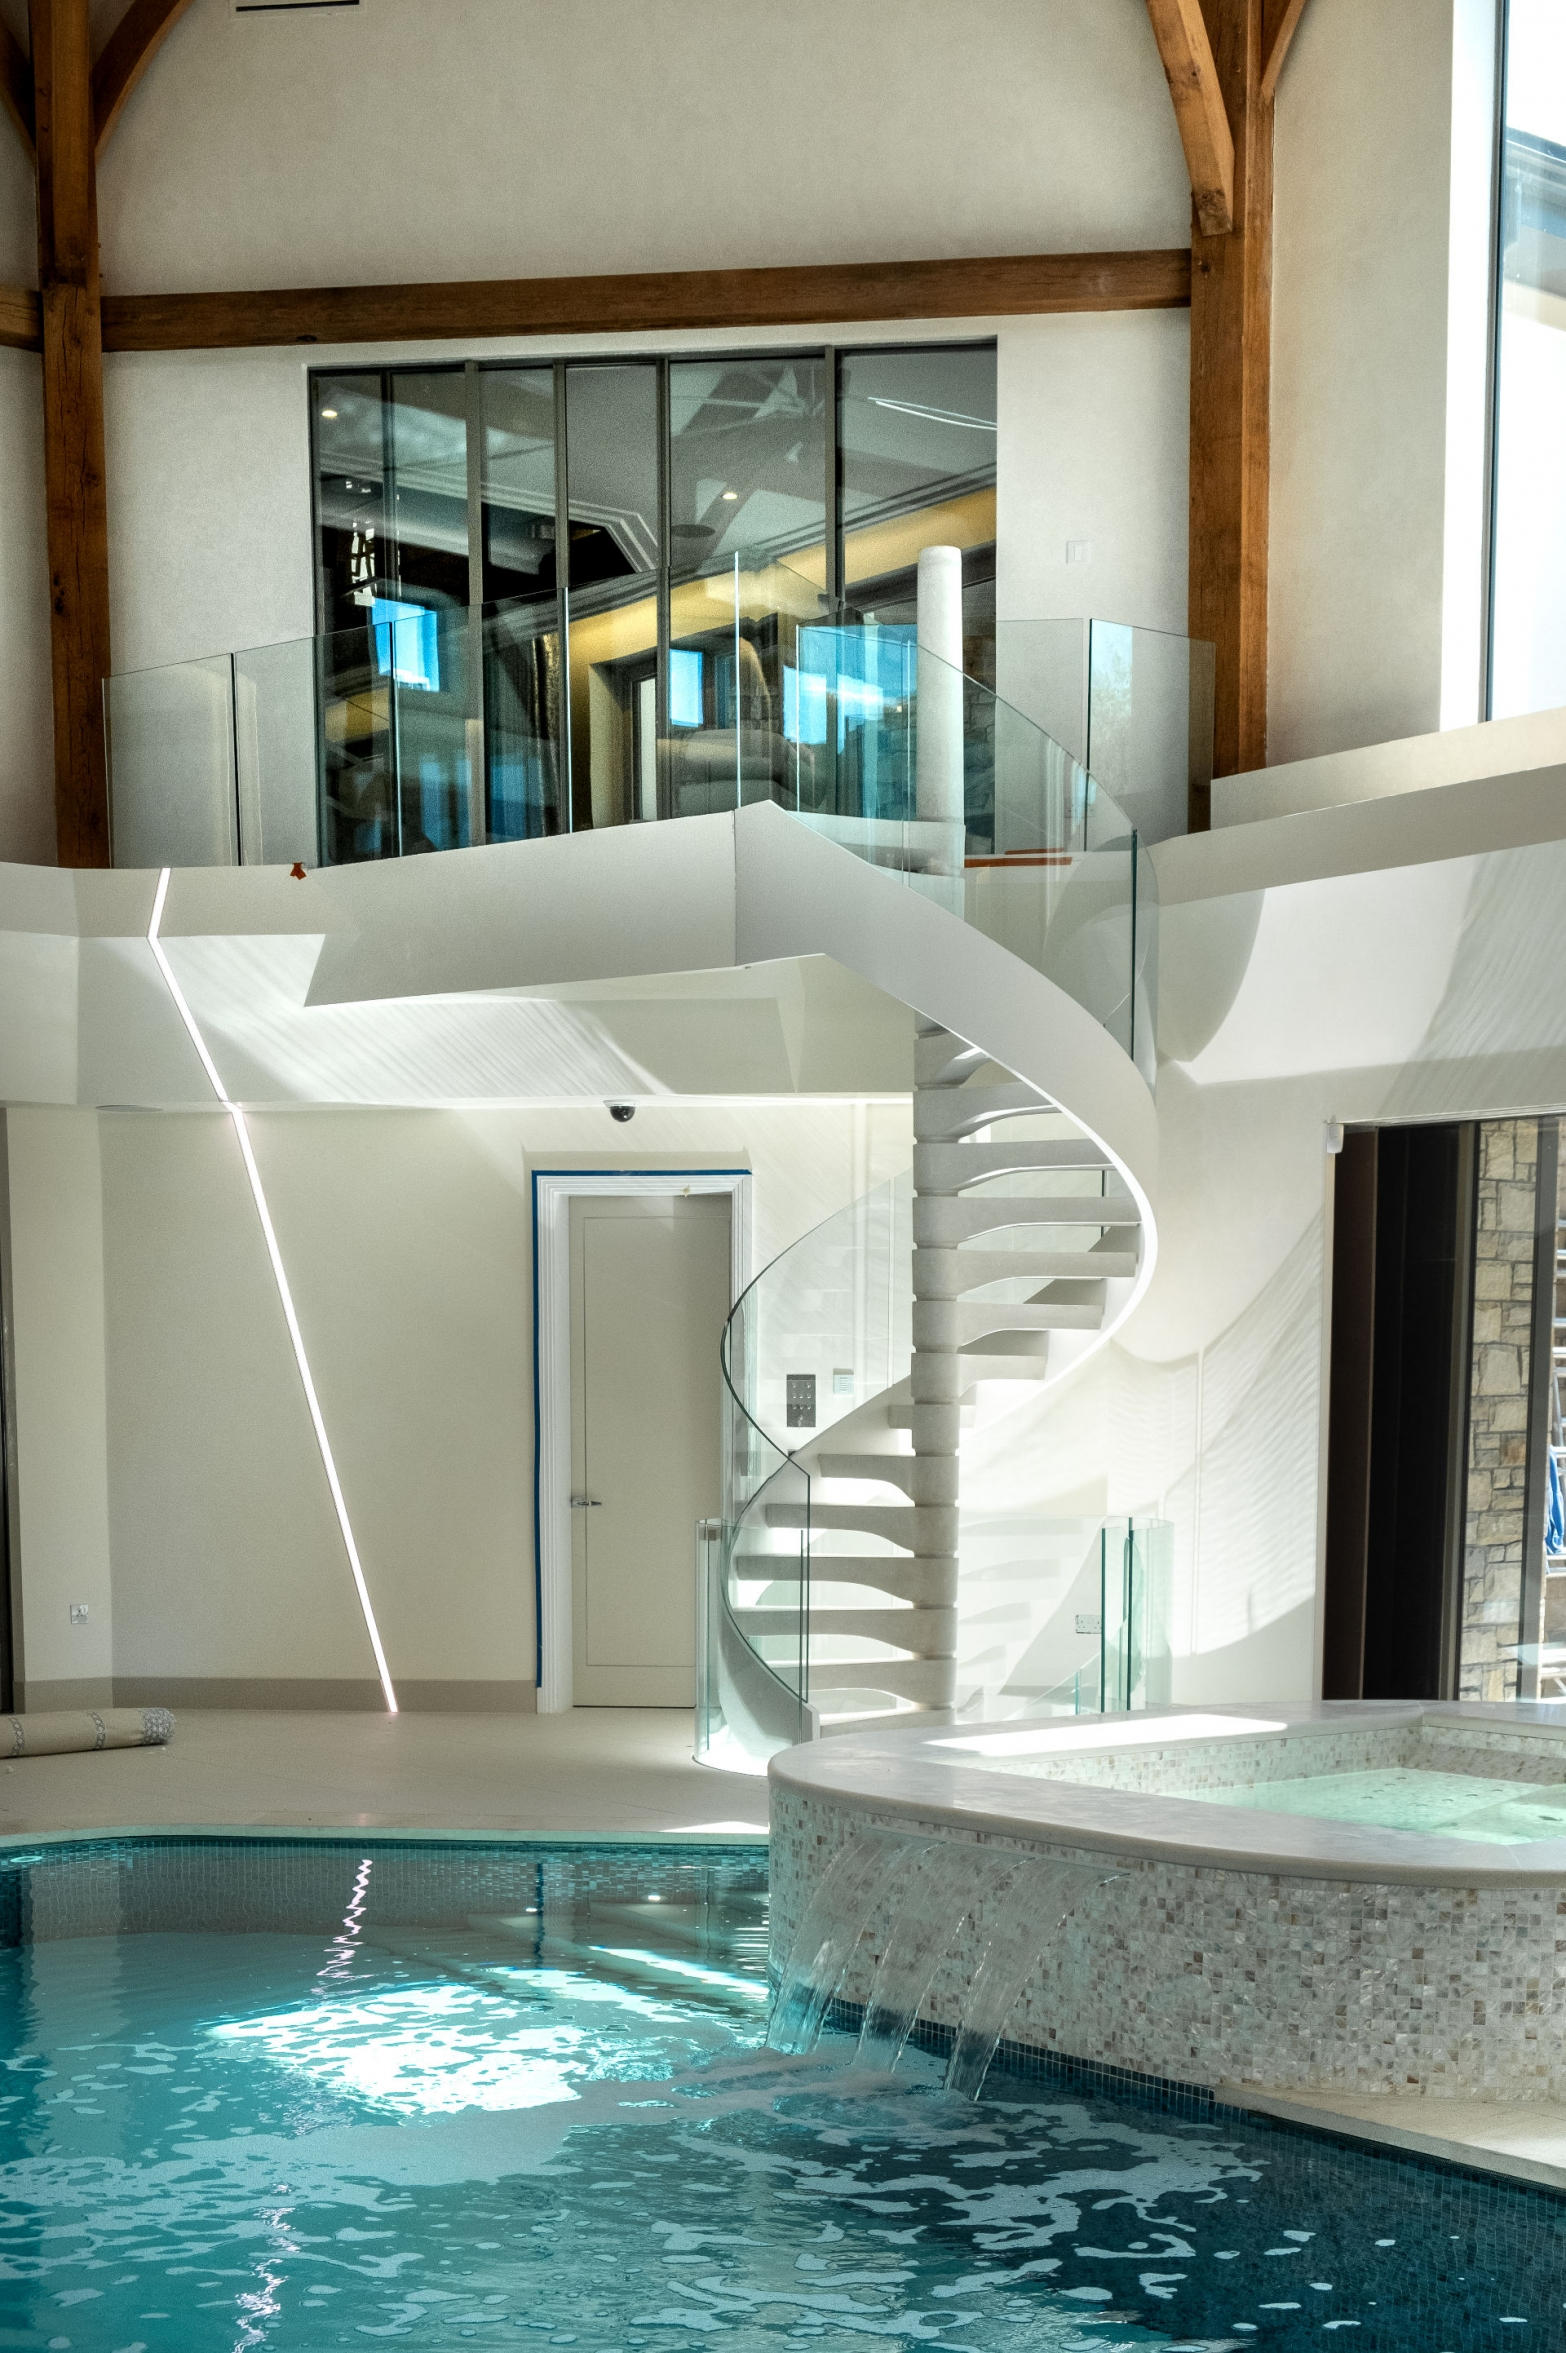 Spiral Staircase leading to a Swimming Pool